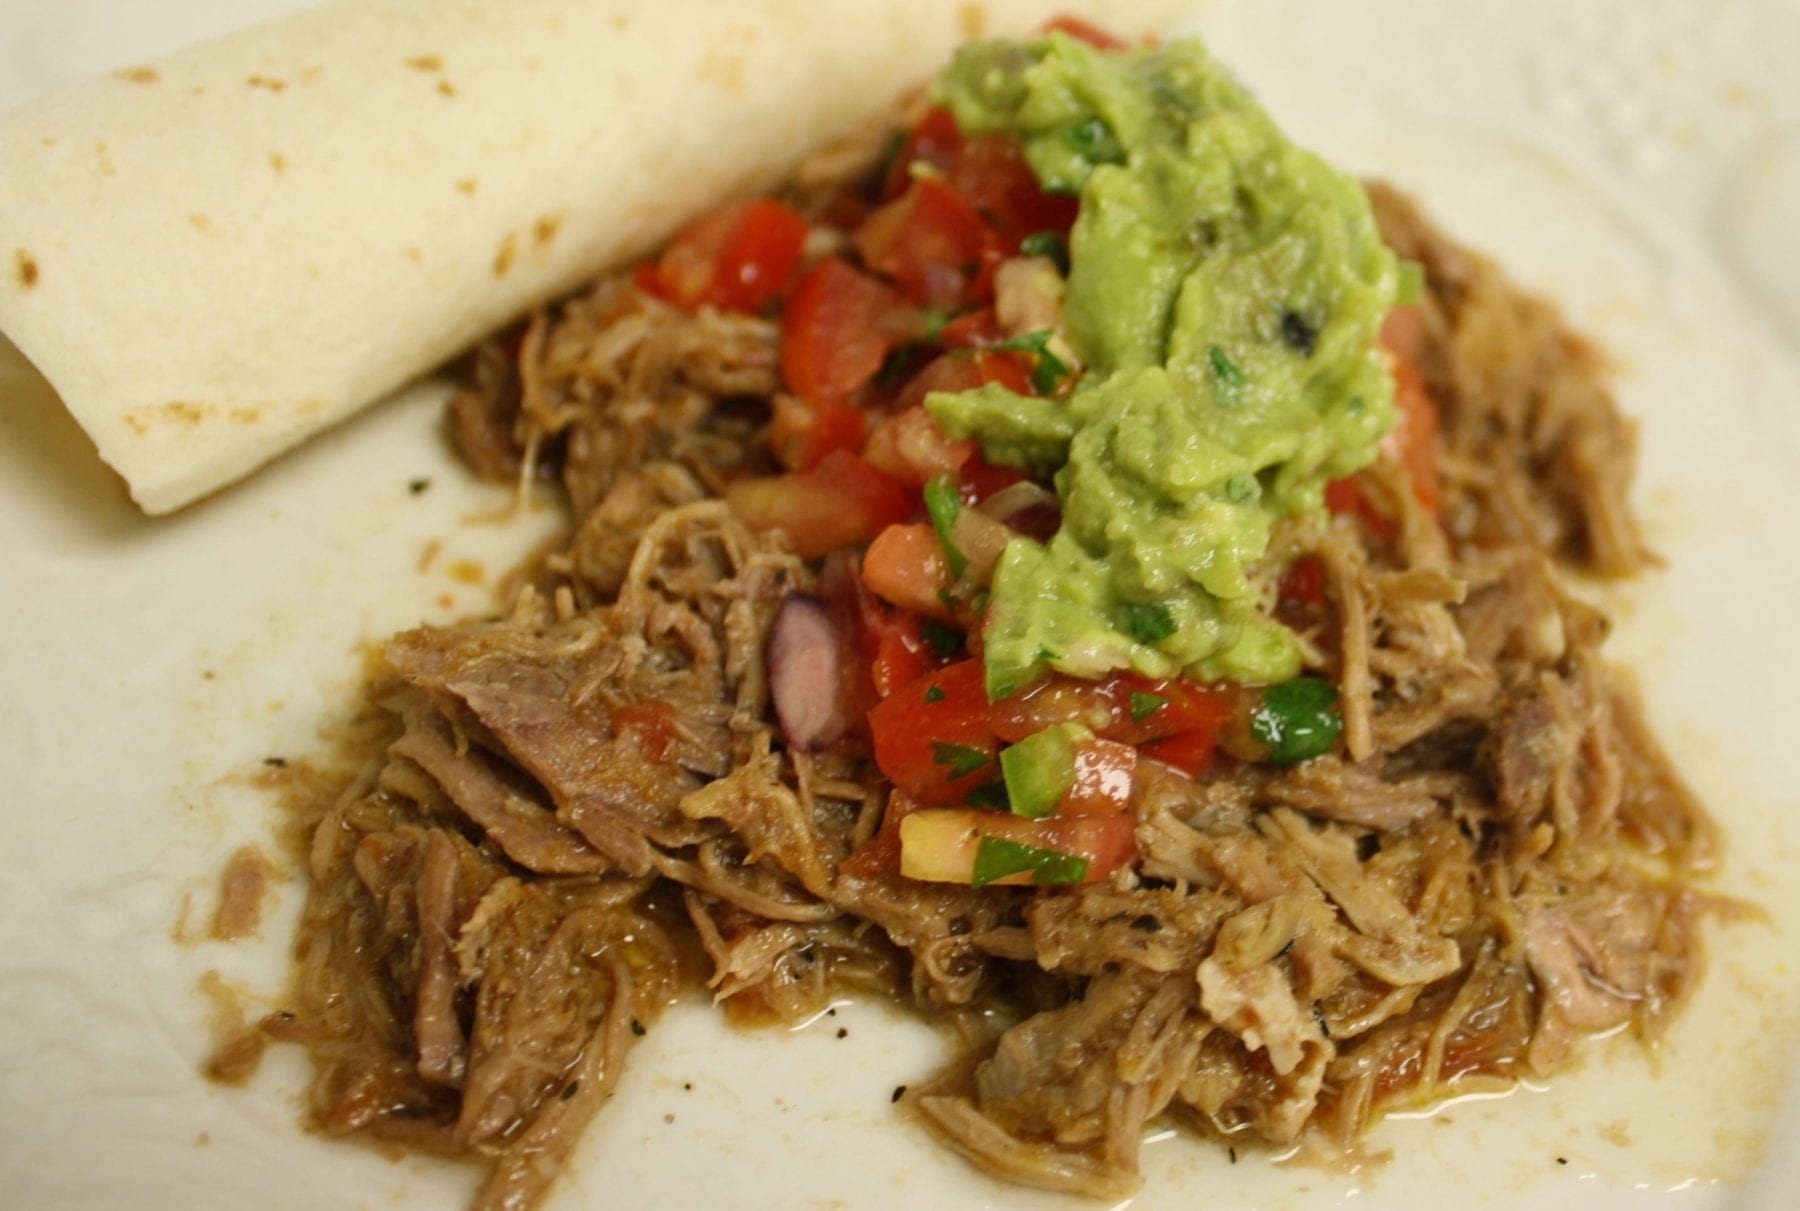 Carnitas Tacos with Salsa and Guacamole